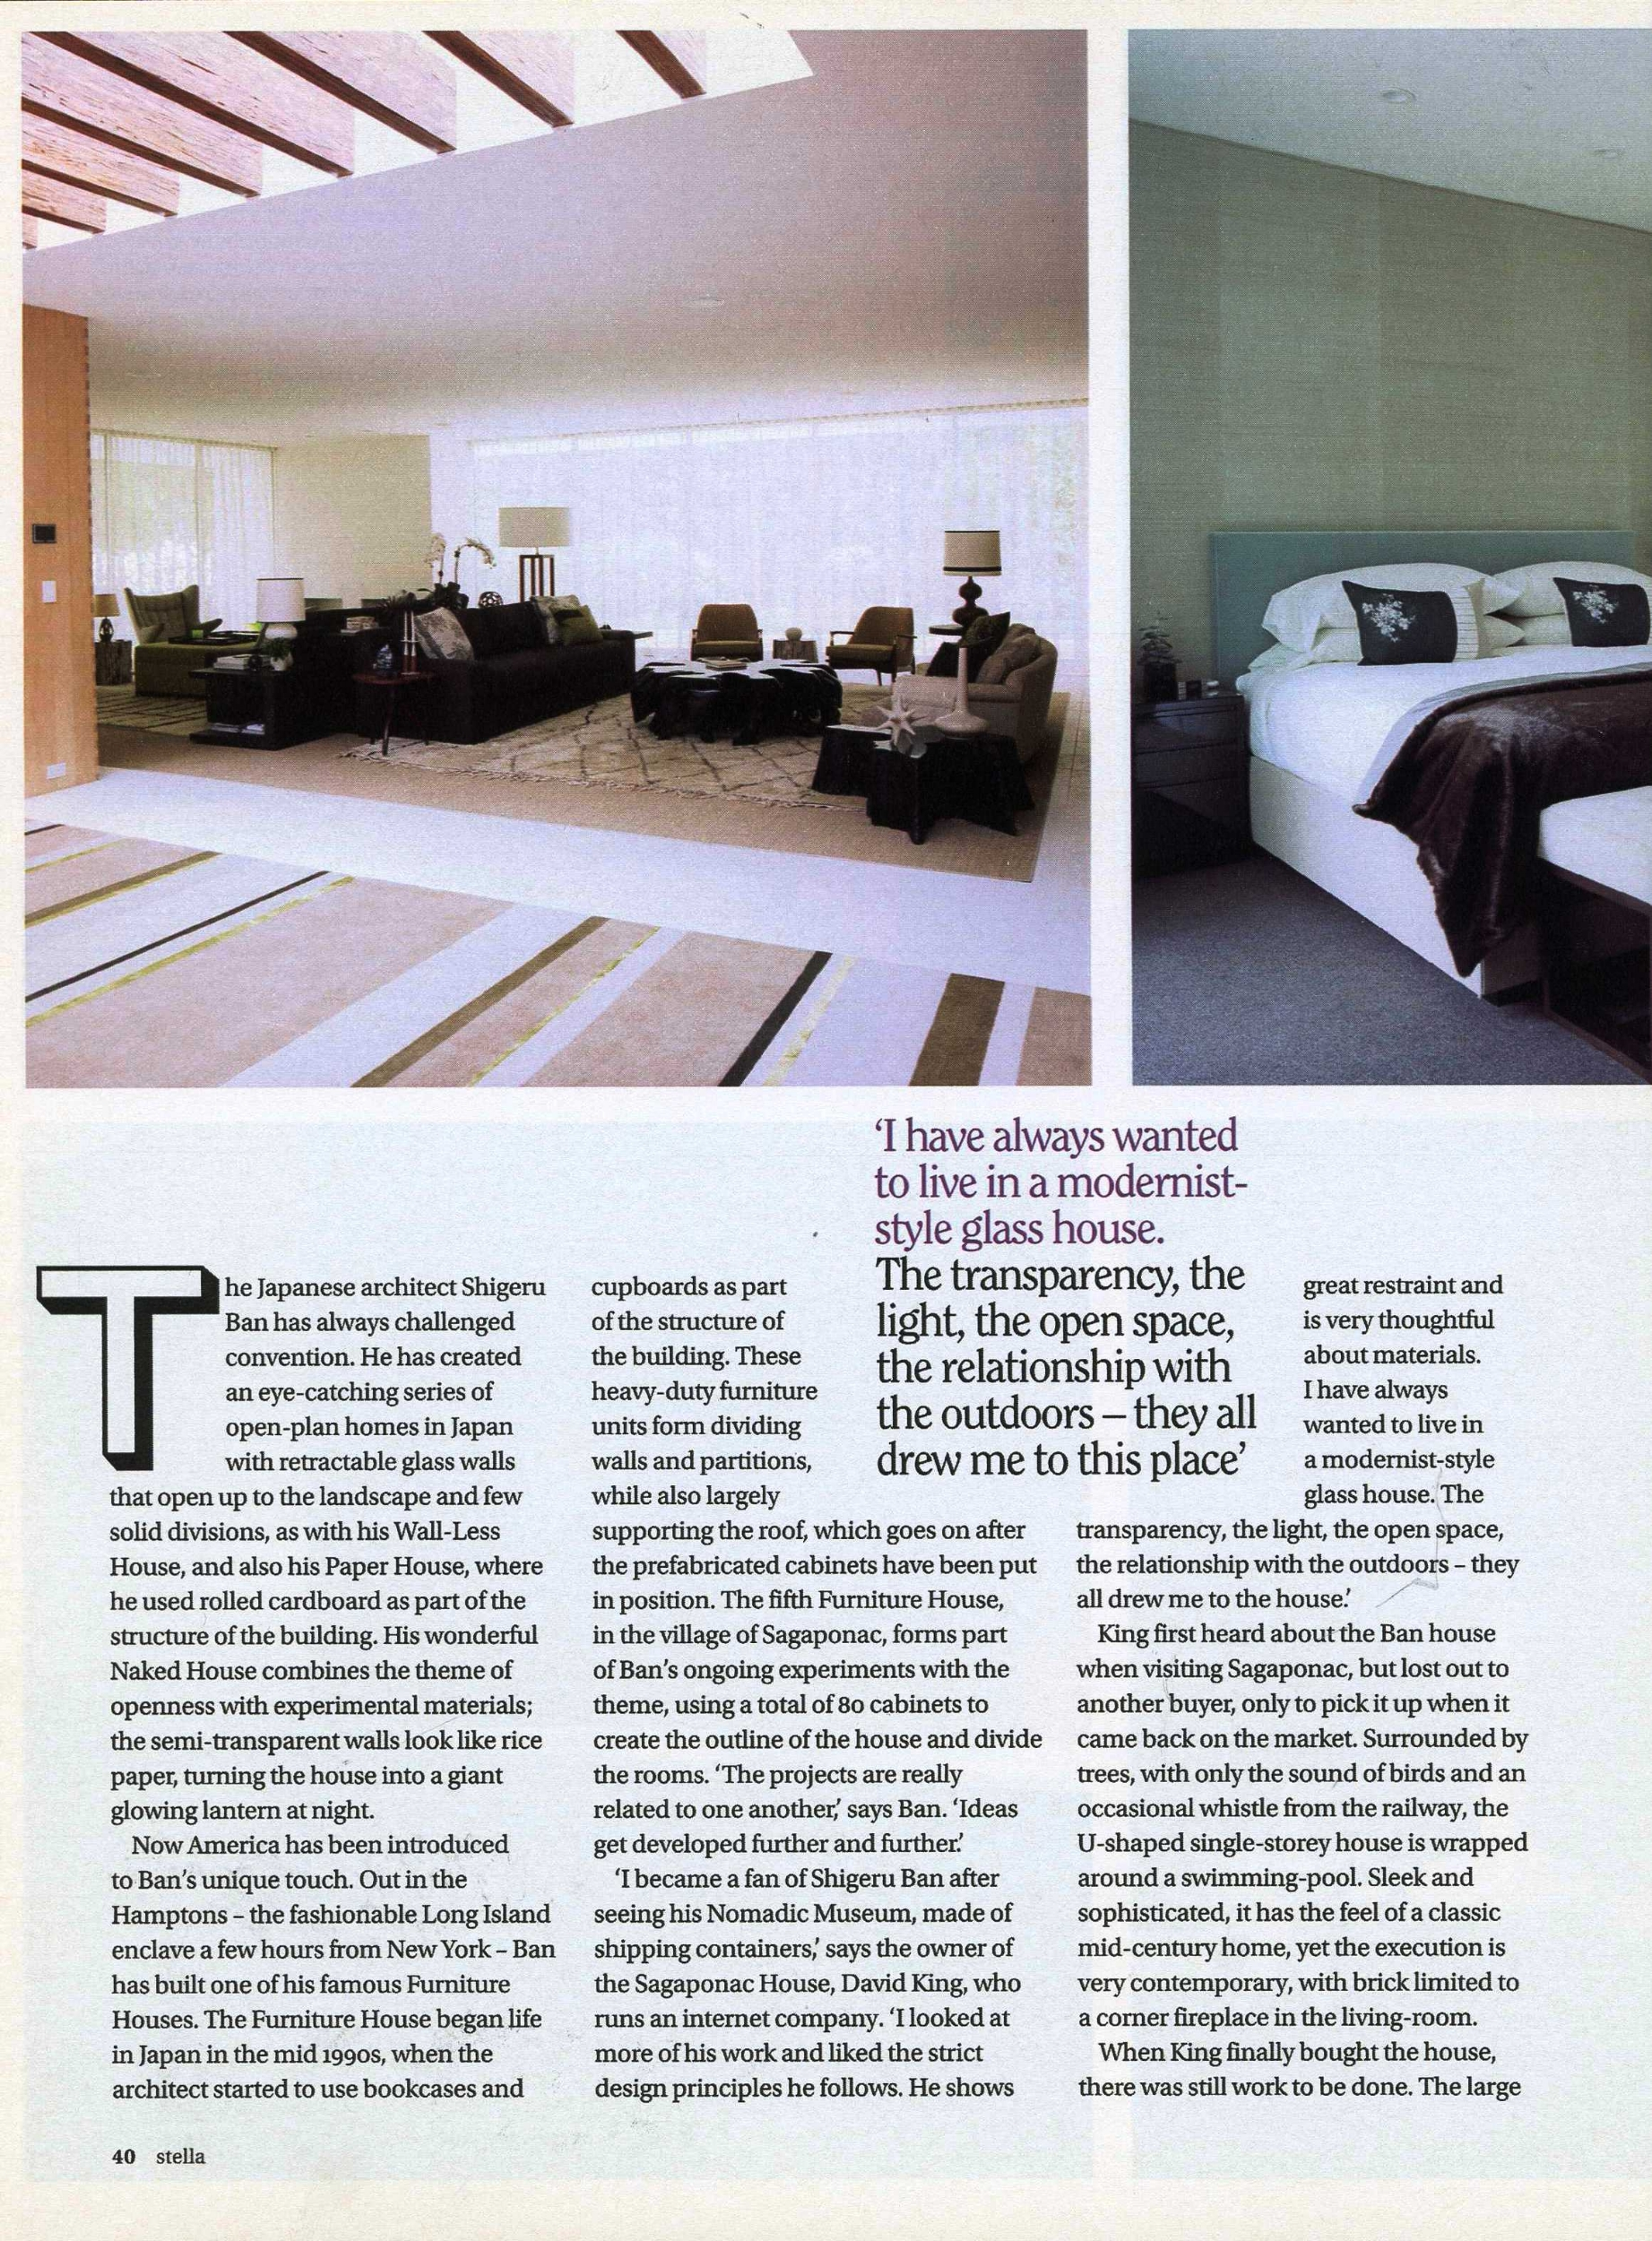 The Sunday Telegraph_Feb 09_Hamptons House_Full Article_Page_4.jpg